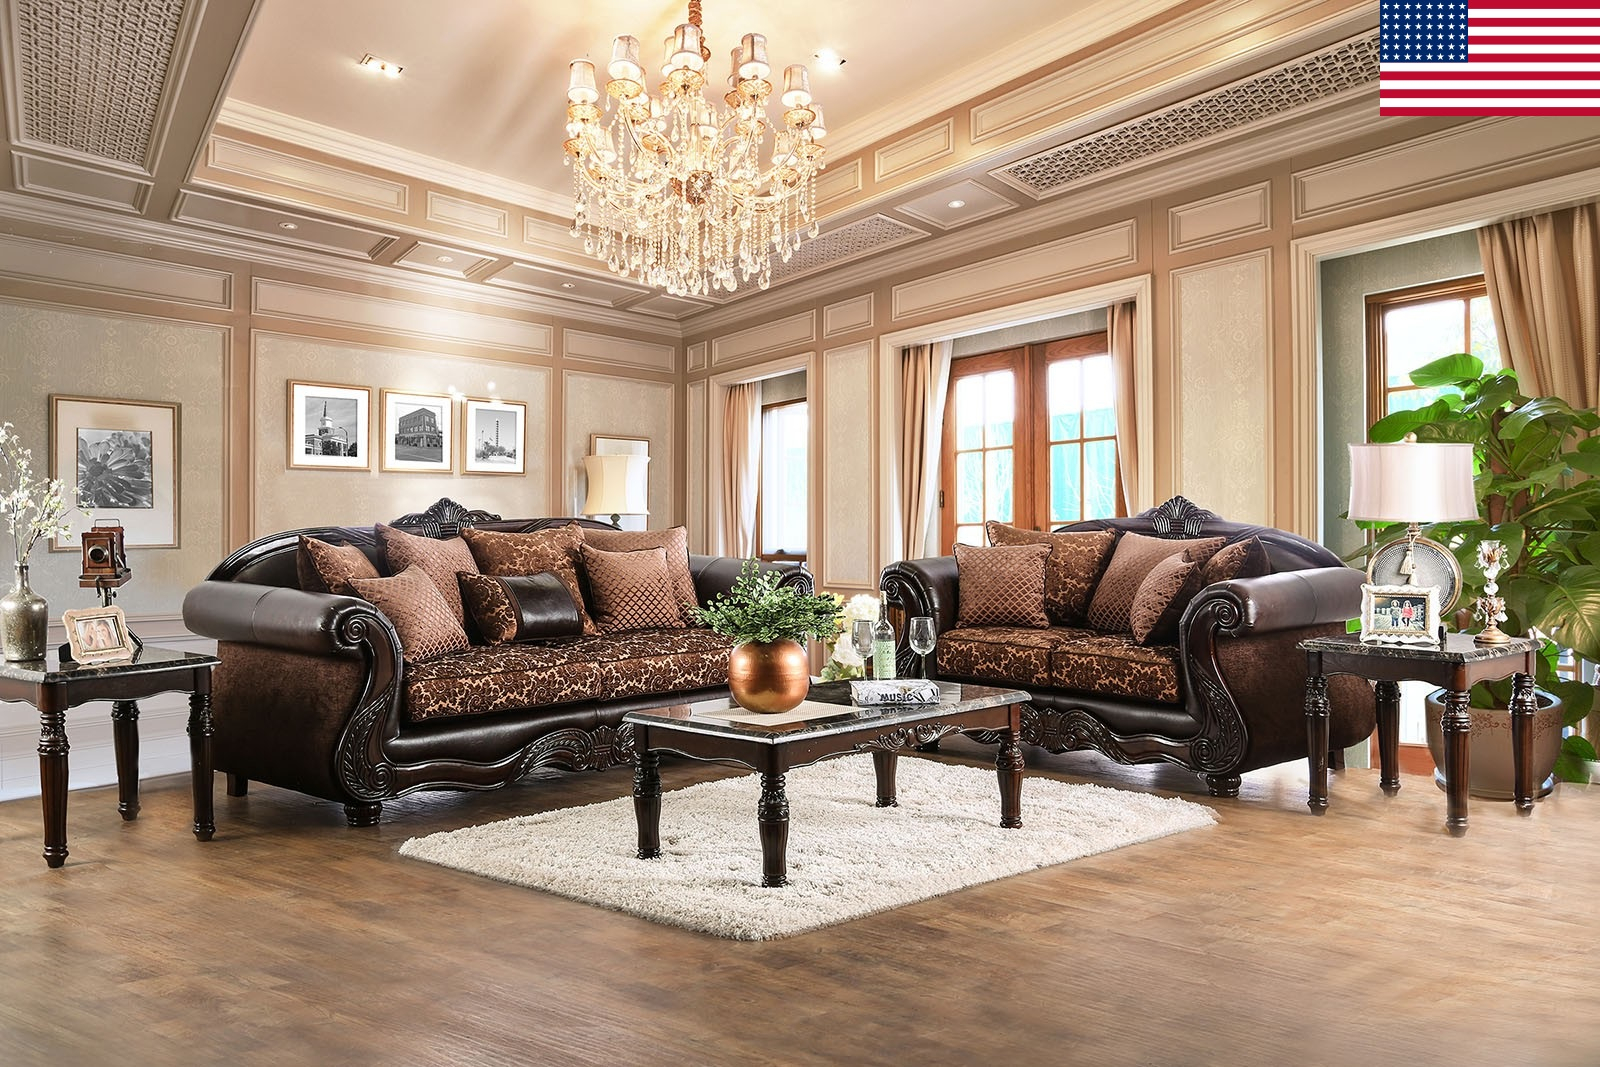 Majestic Royal 2Pc Sofa Set Living Room Furniture Formal With Regard To Sofa Chairs For Living Room (View 15 of 15)